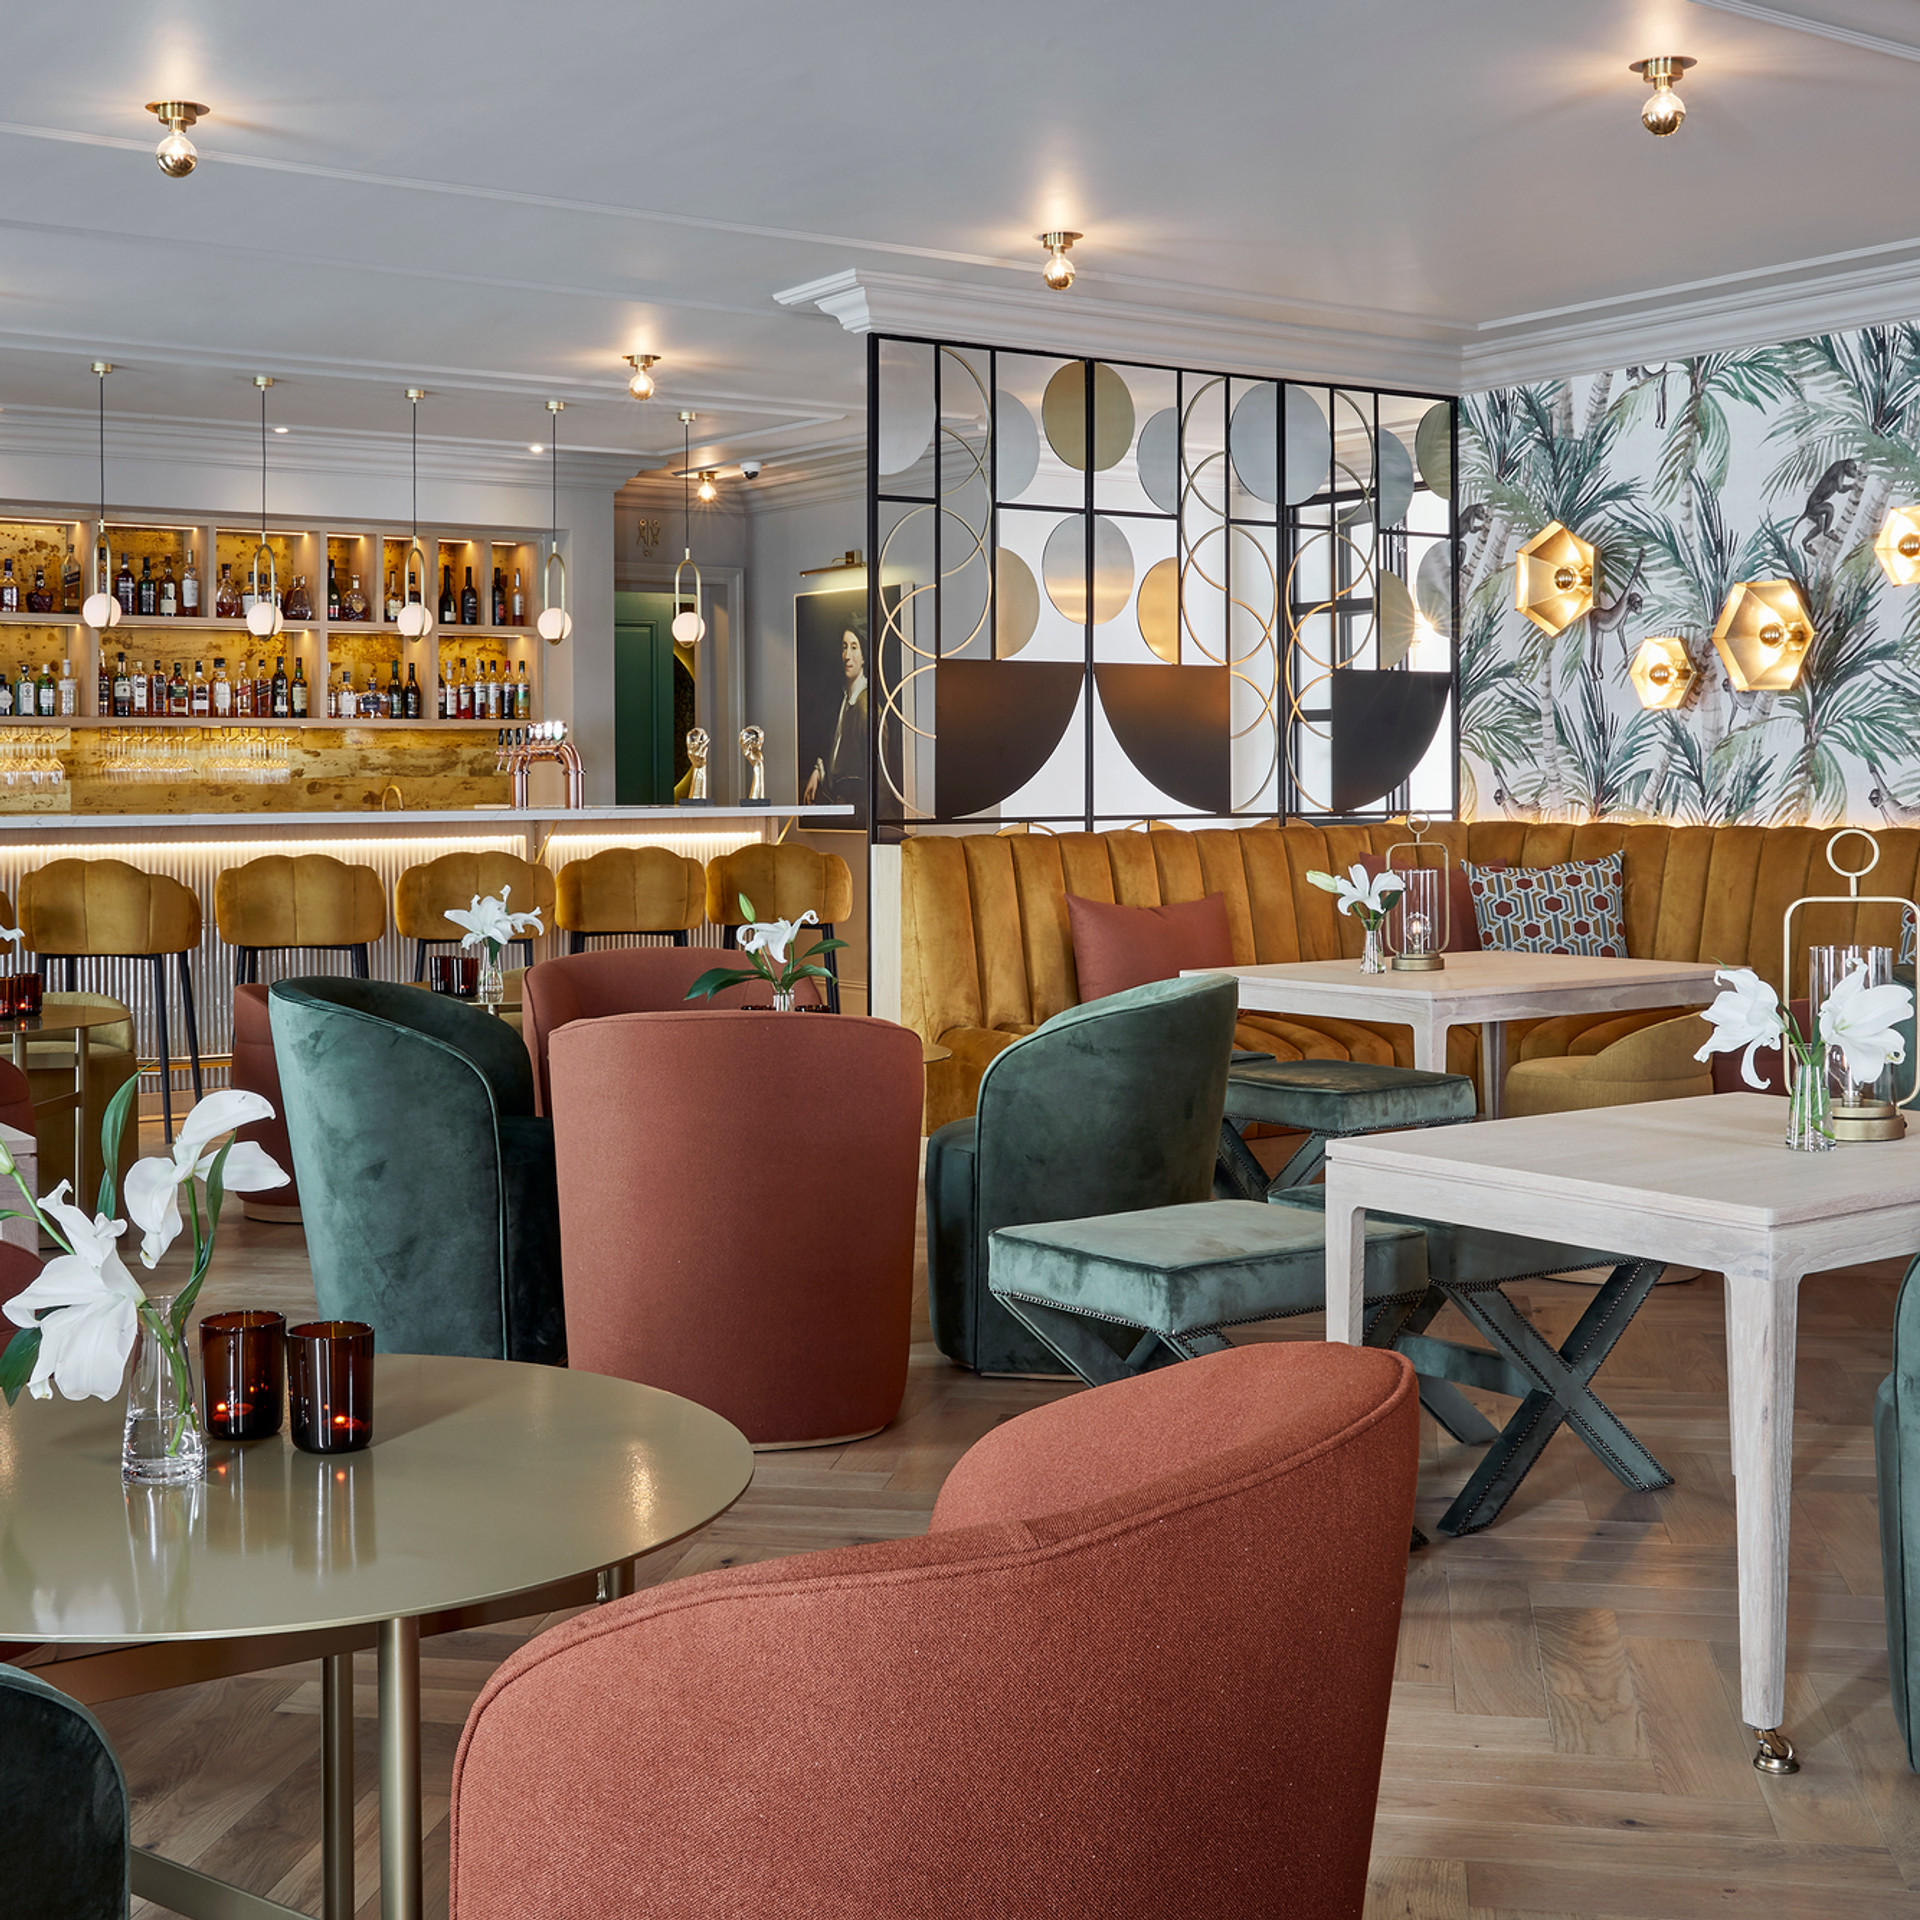 Erinvale Estate Hotel & Spa - South African inspired restaurant and bar in wine land resort